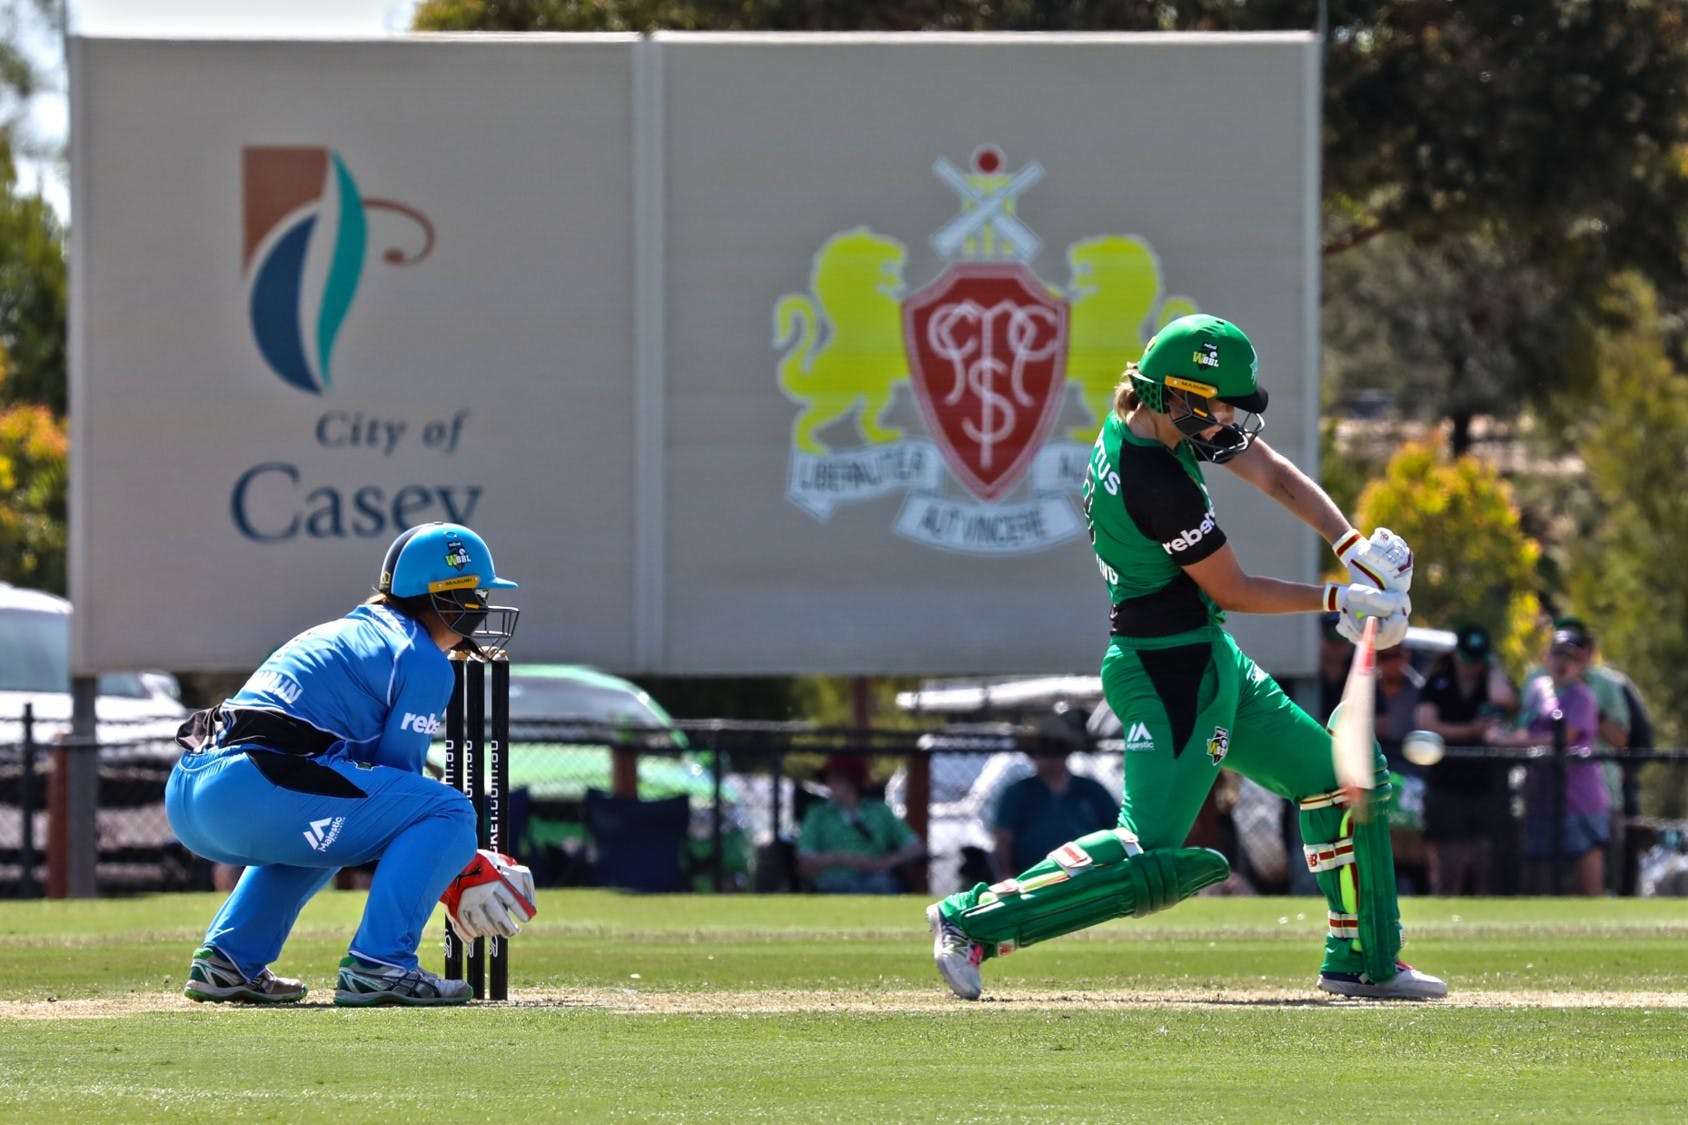 In Action: Regional Cricket Oval Melbourne Stars WBBL match 2018